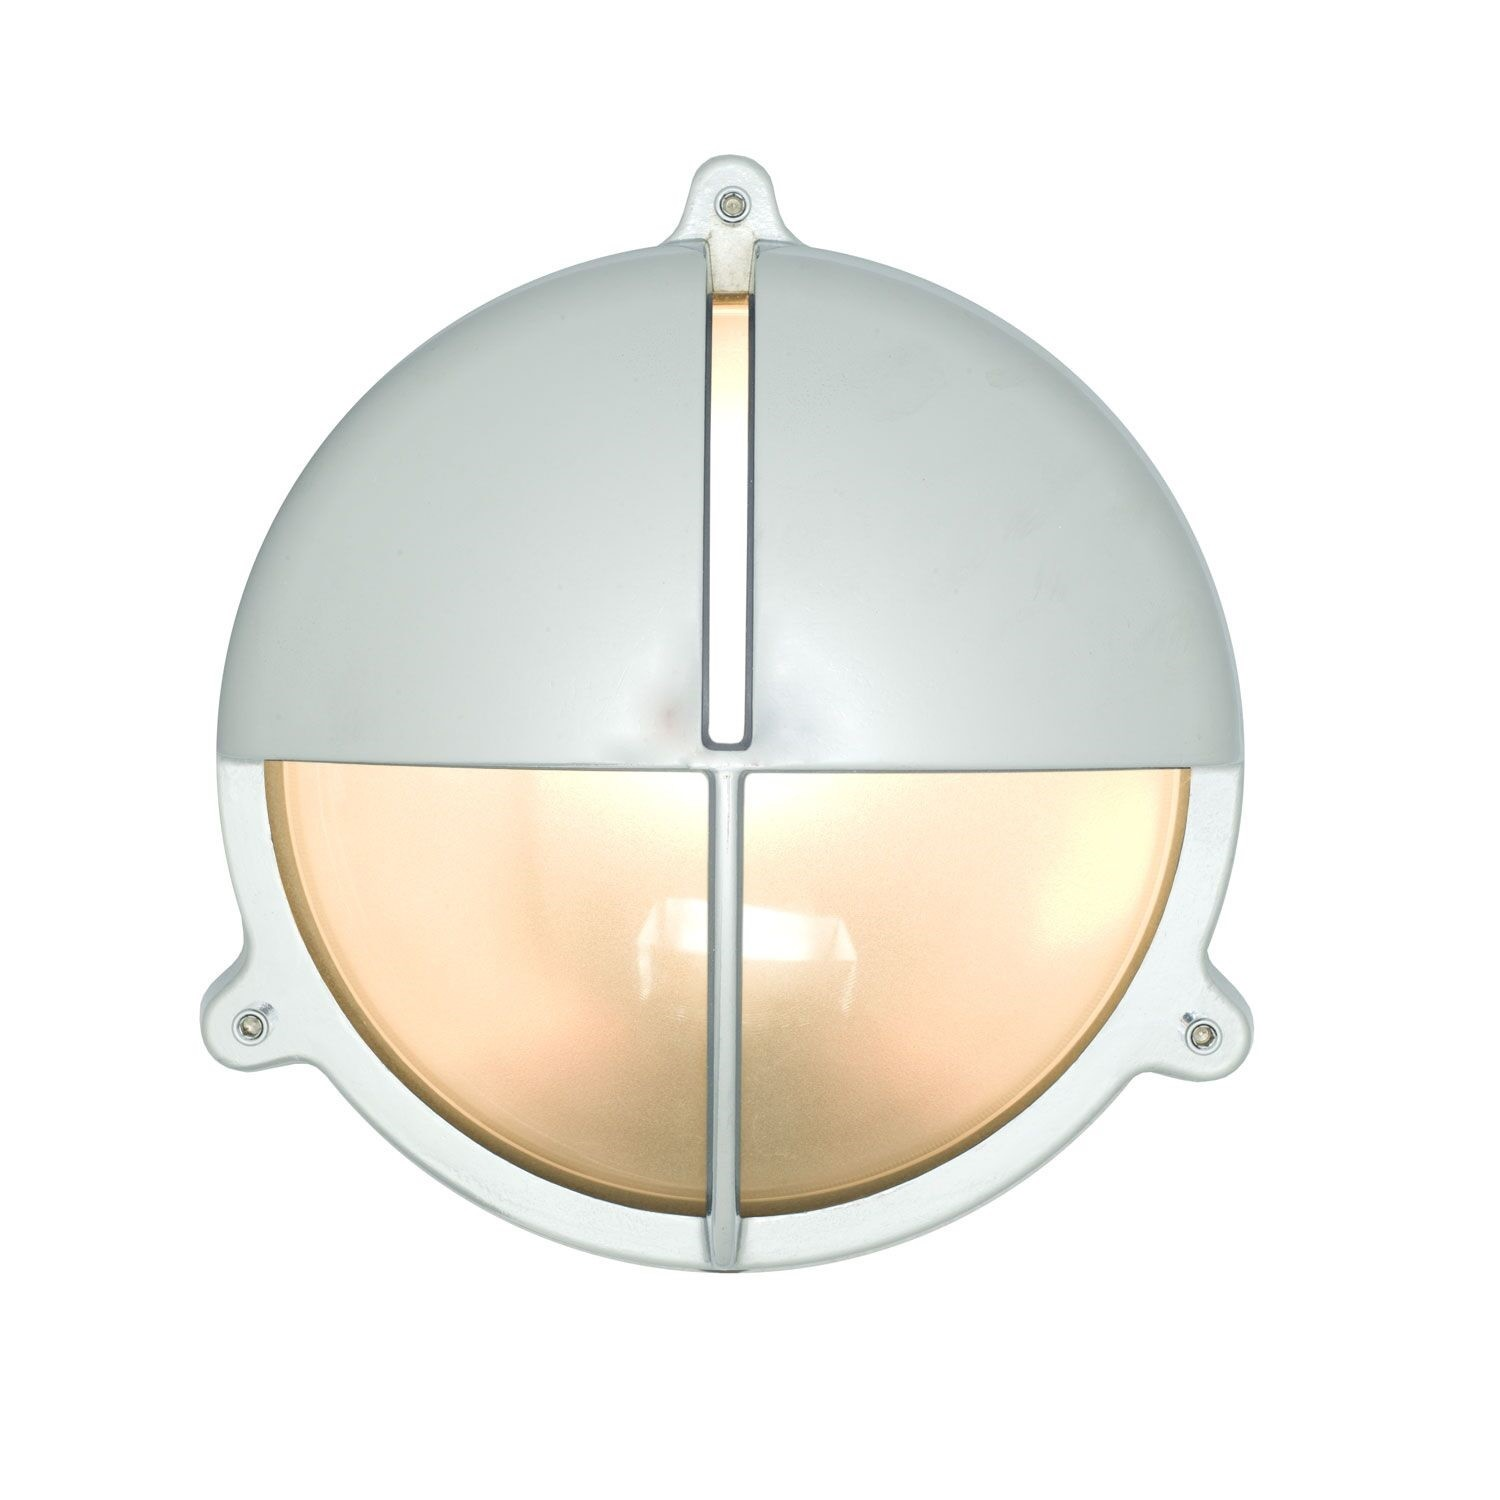 Brass Bulkhead With Eyelid Shield Chrome Plated, 22.6cm